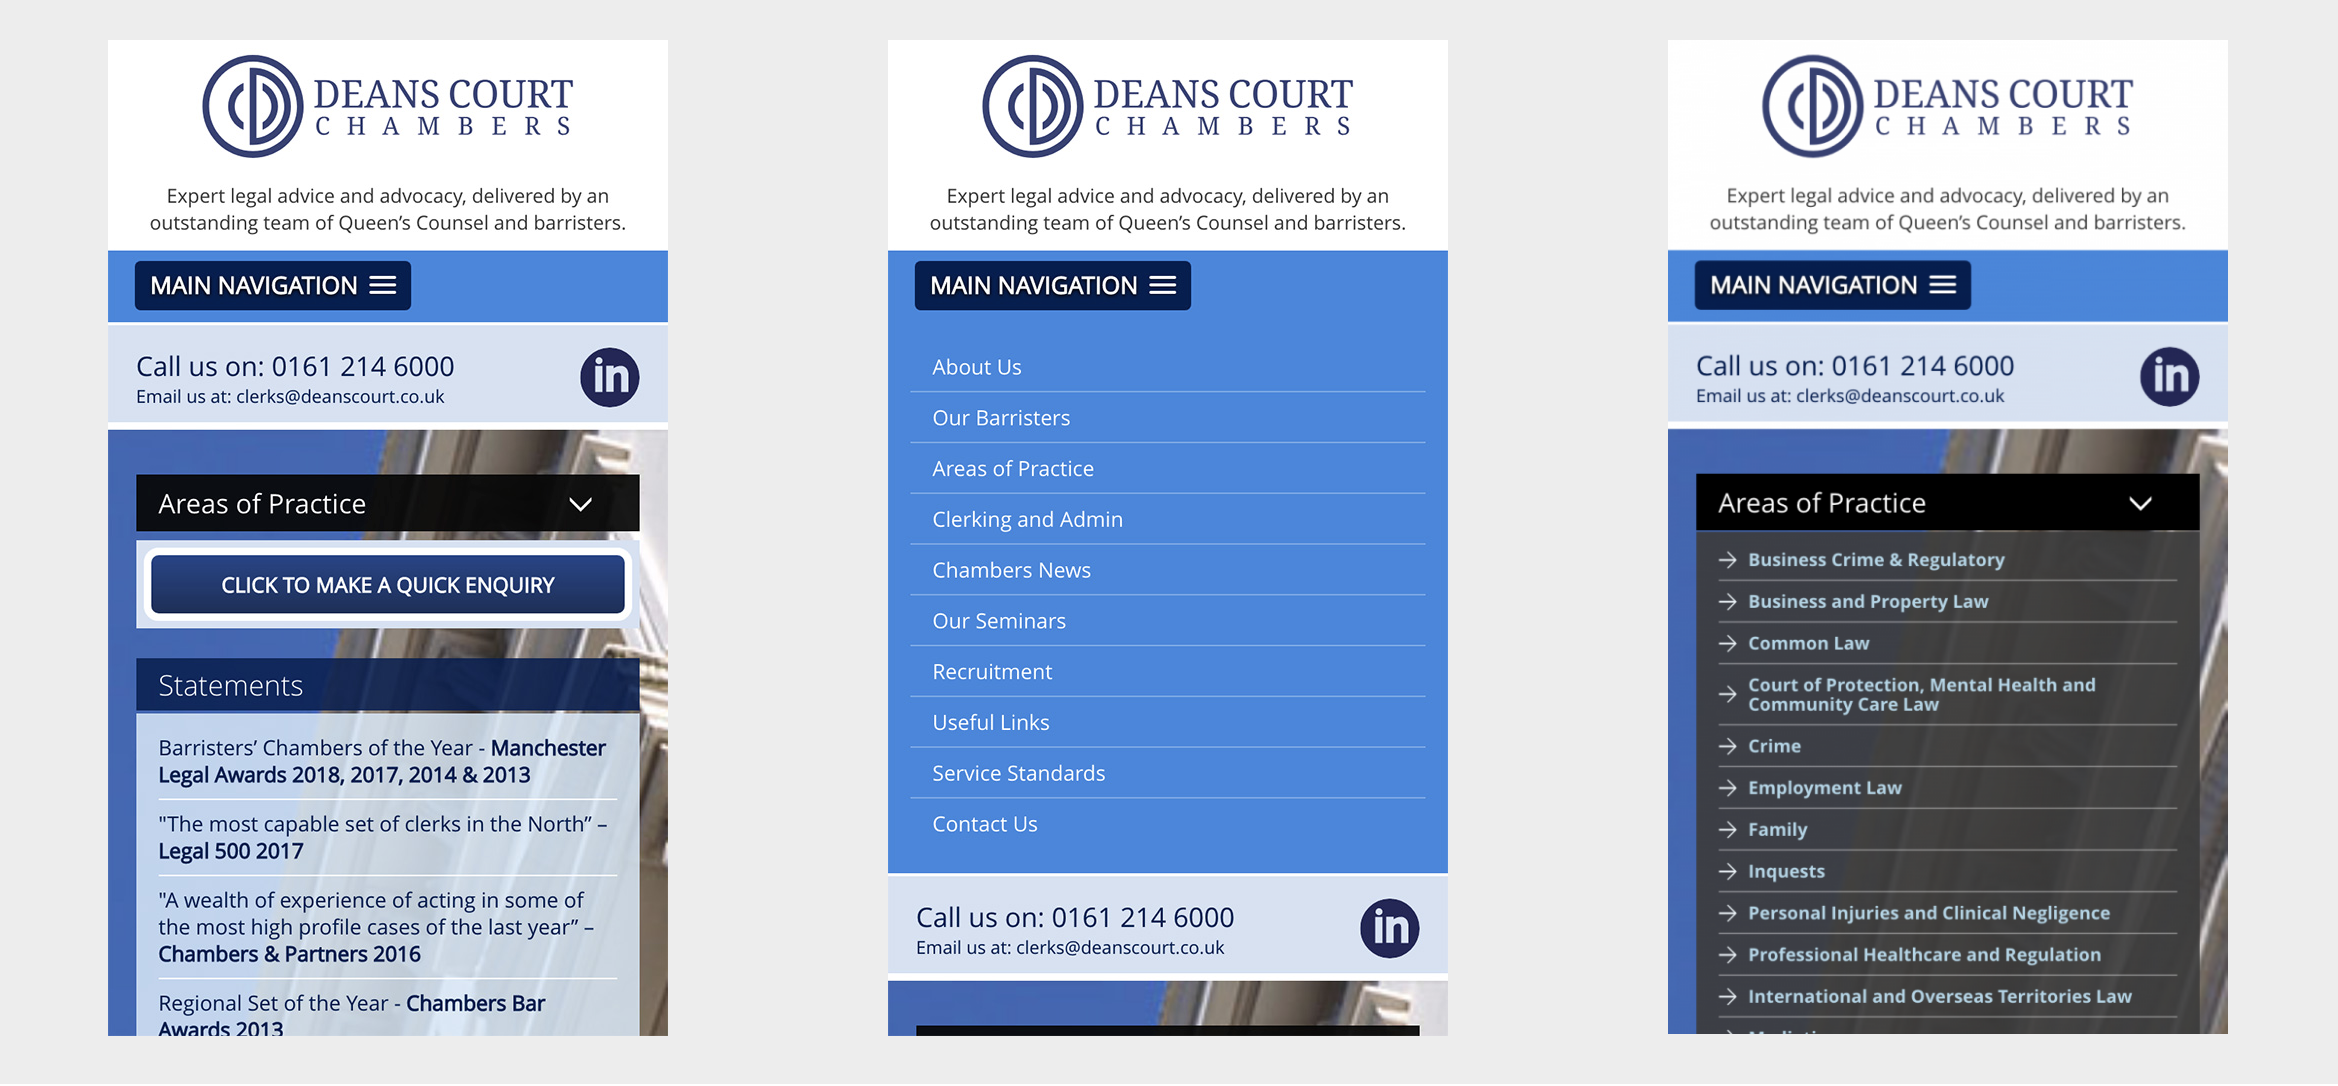 Deans Court Chamber mobile